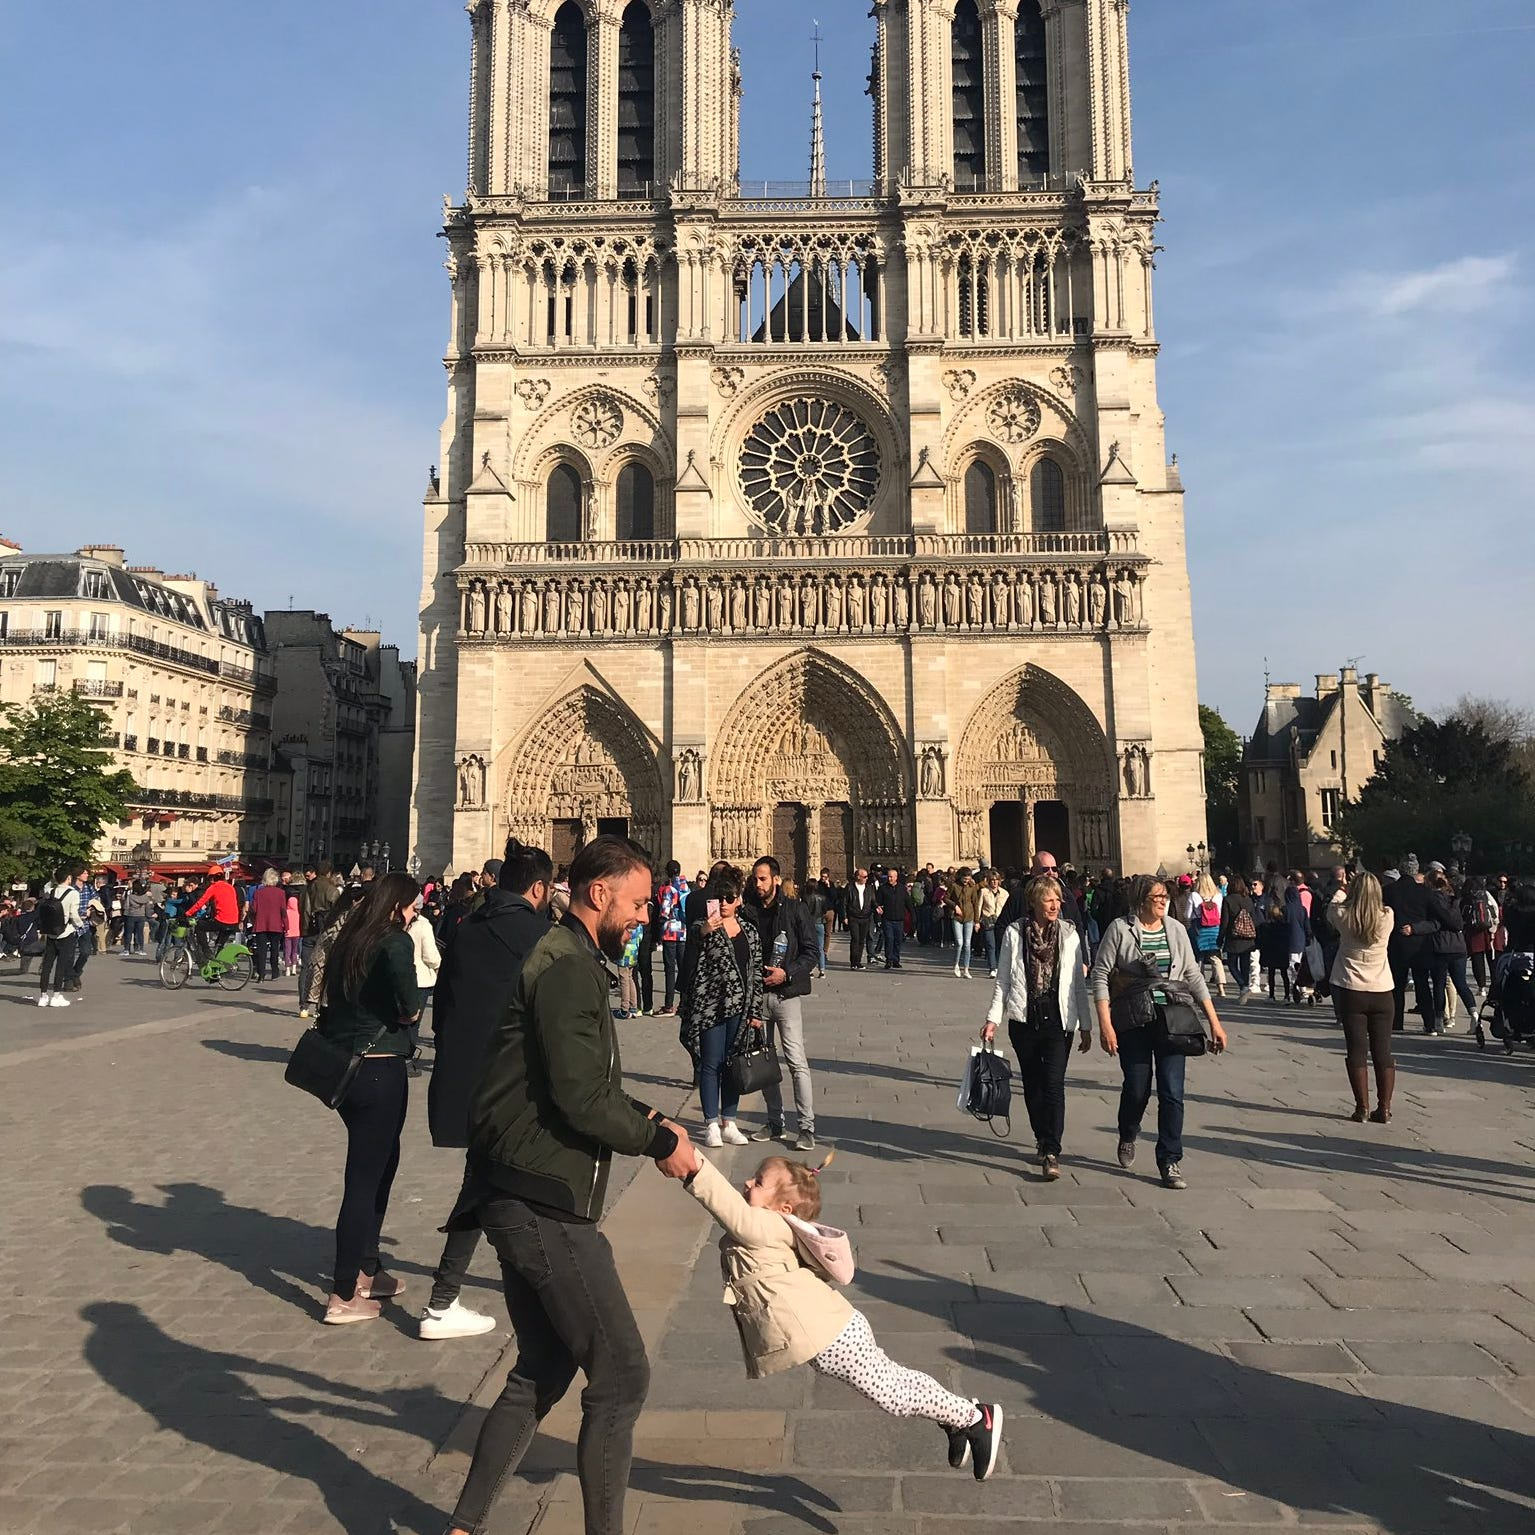 Man identified in viral Notre Dame photo taken by Michigan woman